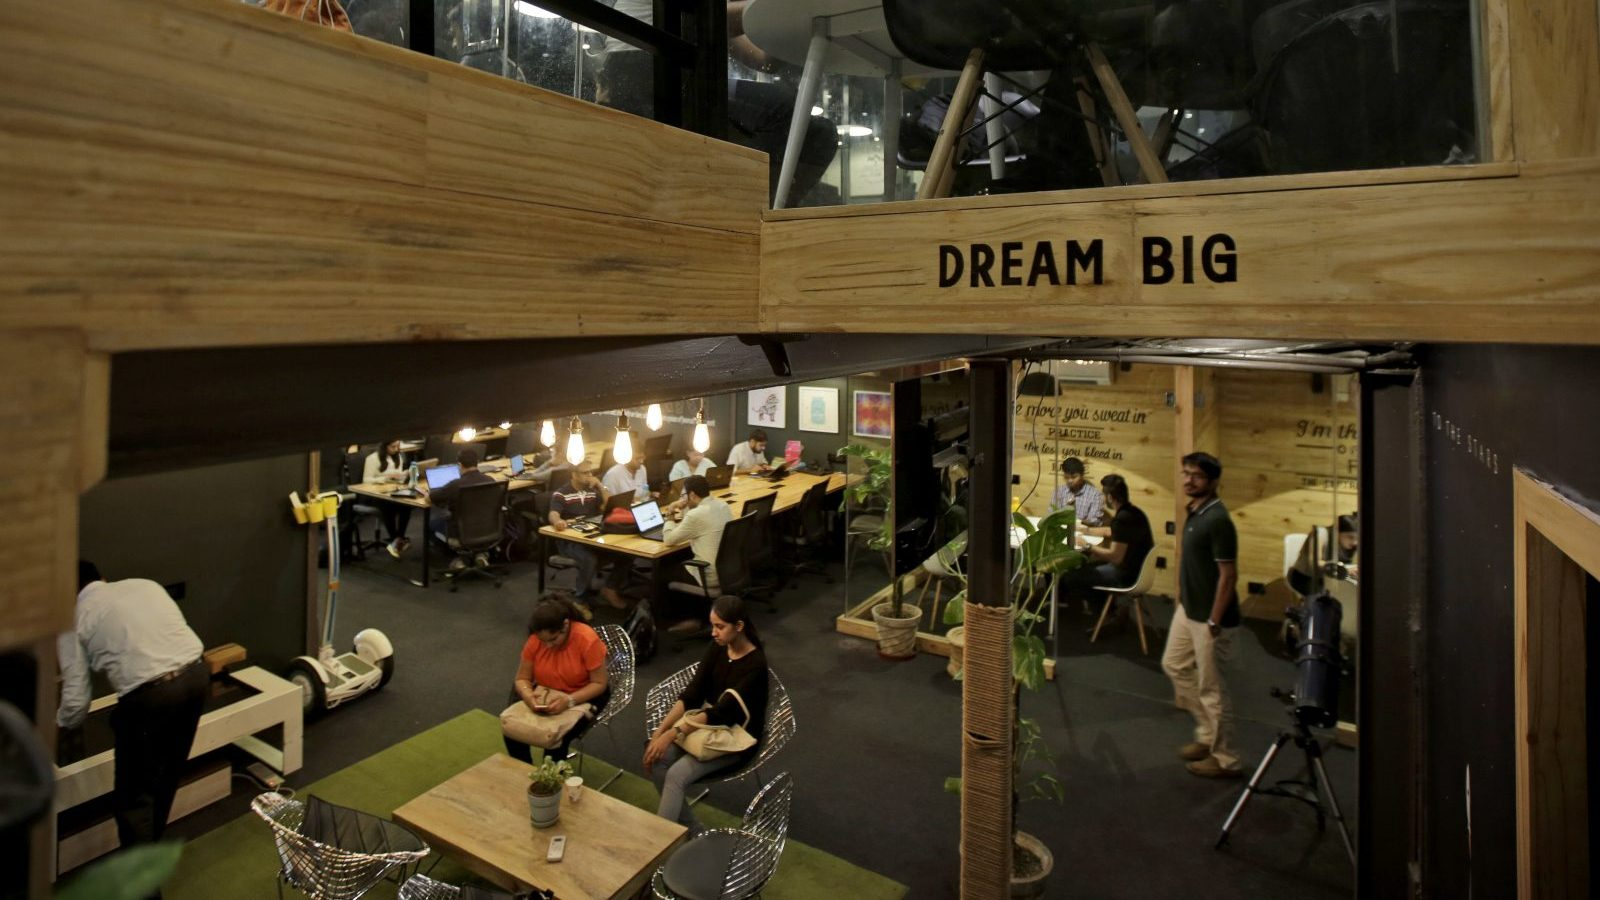 In this Aug. 19, 2016 photo, young Indian entrepreneurs and freelancers work inside Innov8, a lax co-working space in New Delhi, India. As India emerges as one of the biggest markets in the world for tech-based startups, workspaces are transforming from traditional and hierarchal, to relaxed and bar-like. With more than 4,200 new tech-based companies by the end of last year, India has become the third largest market for startups, according to The National Association of Software and Services Companies (NASSCOM), an Indian software industry research company. (AP Photo/Altaf Qadri)